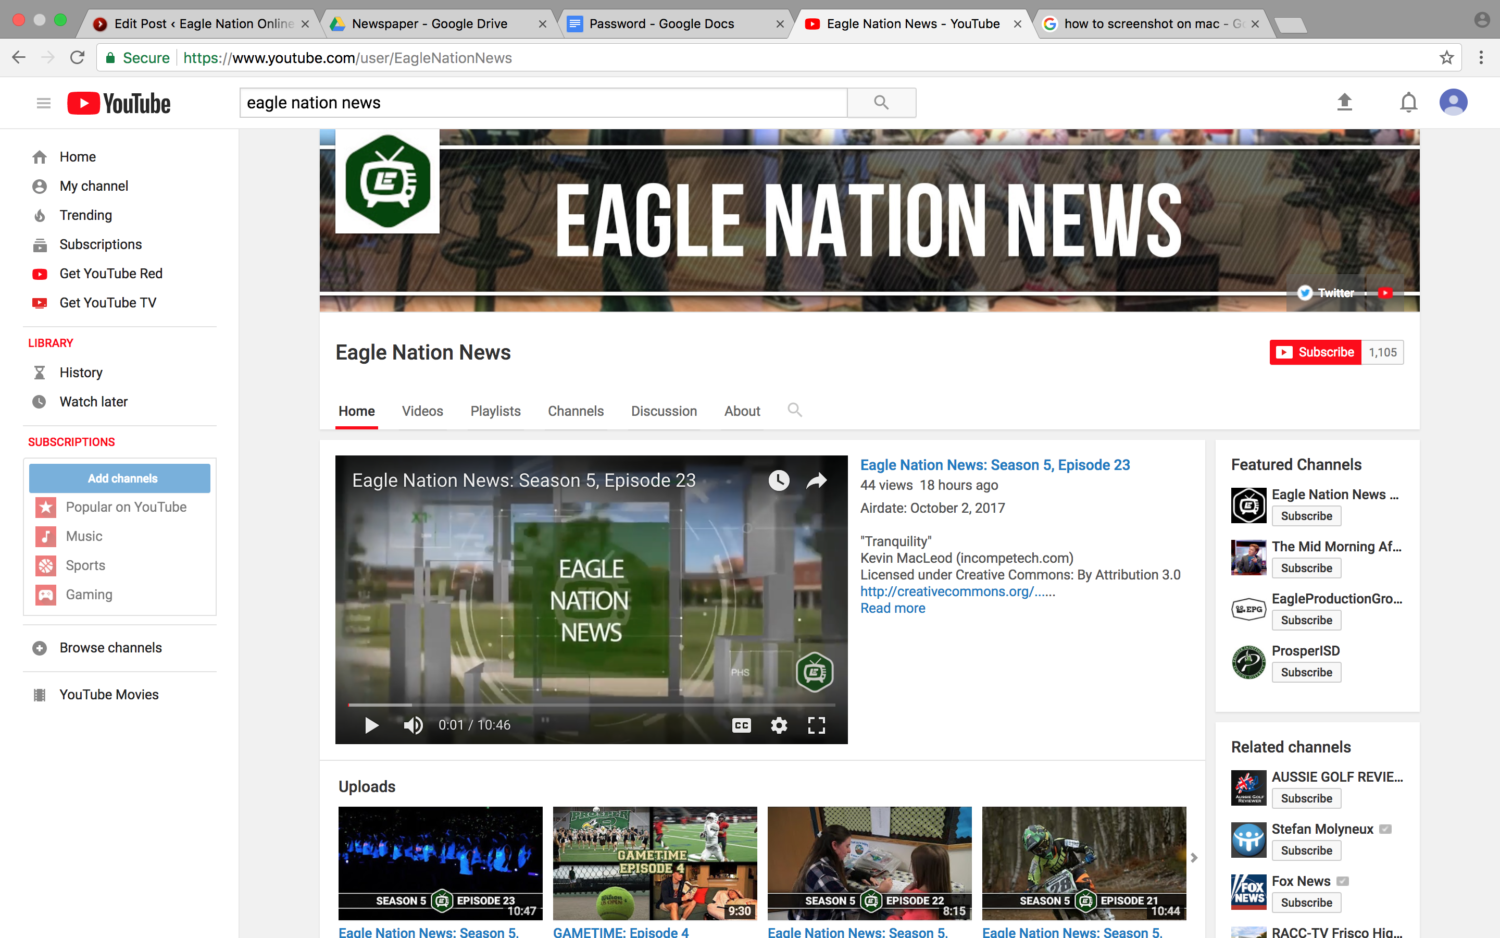 Front page of Eagle Nation News' YouTube page